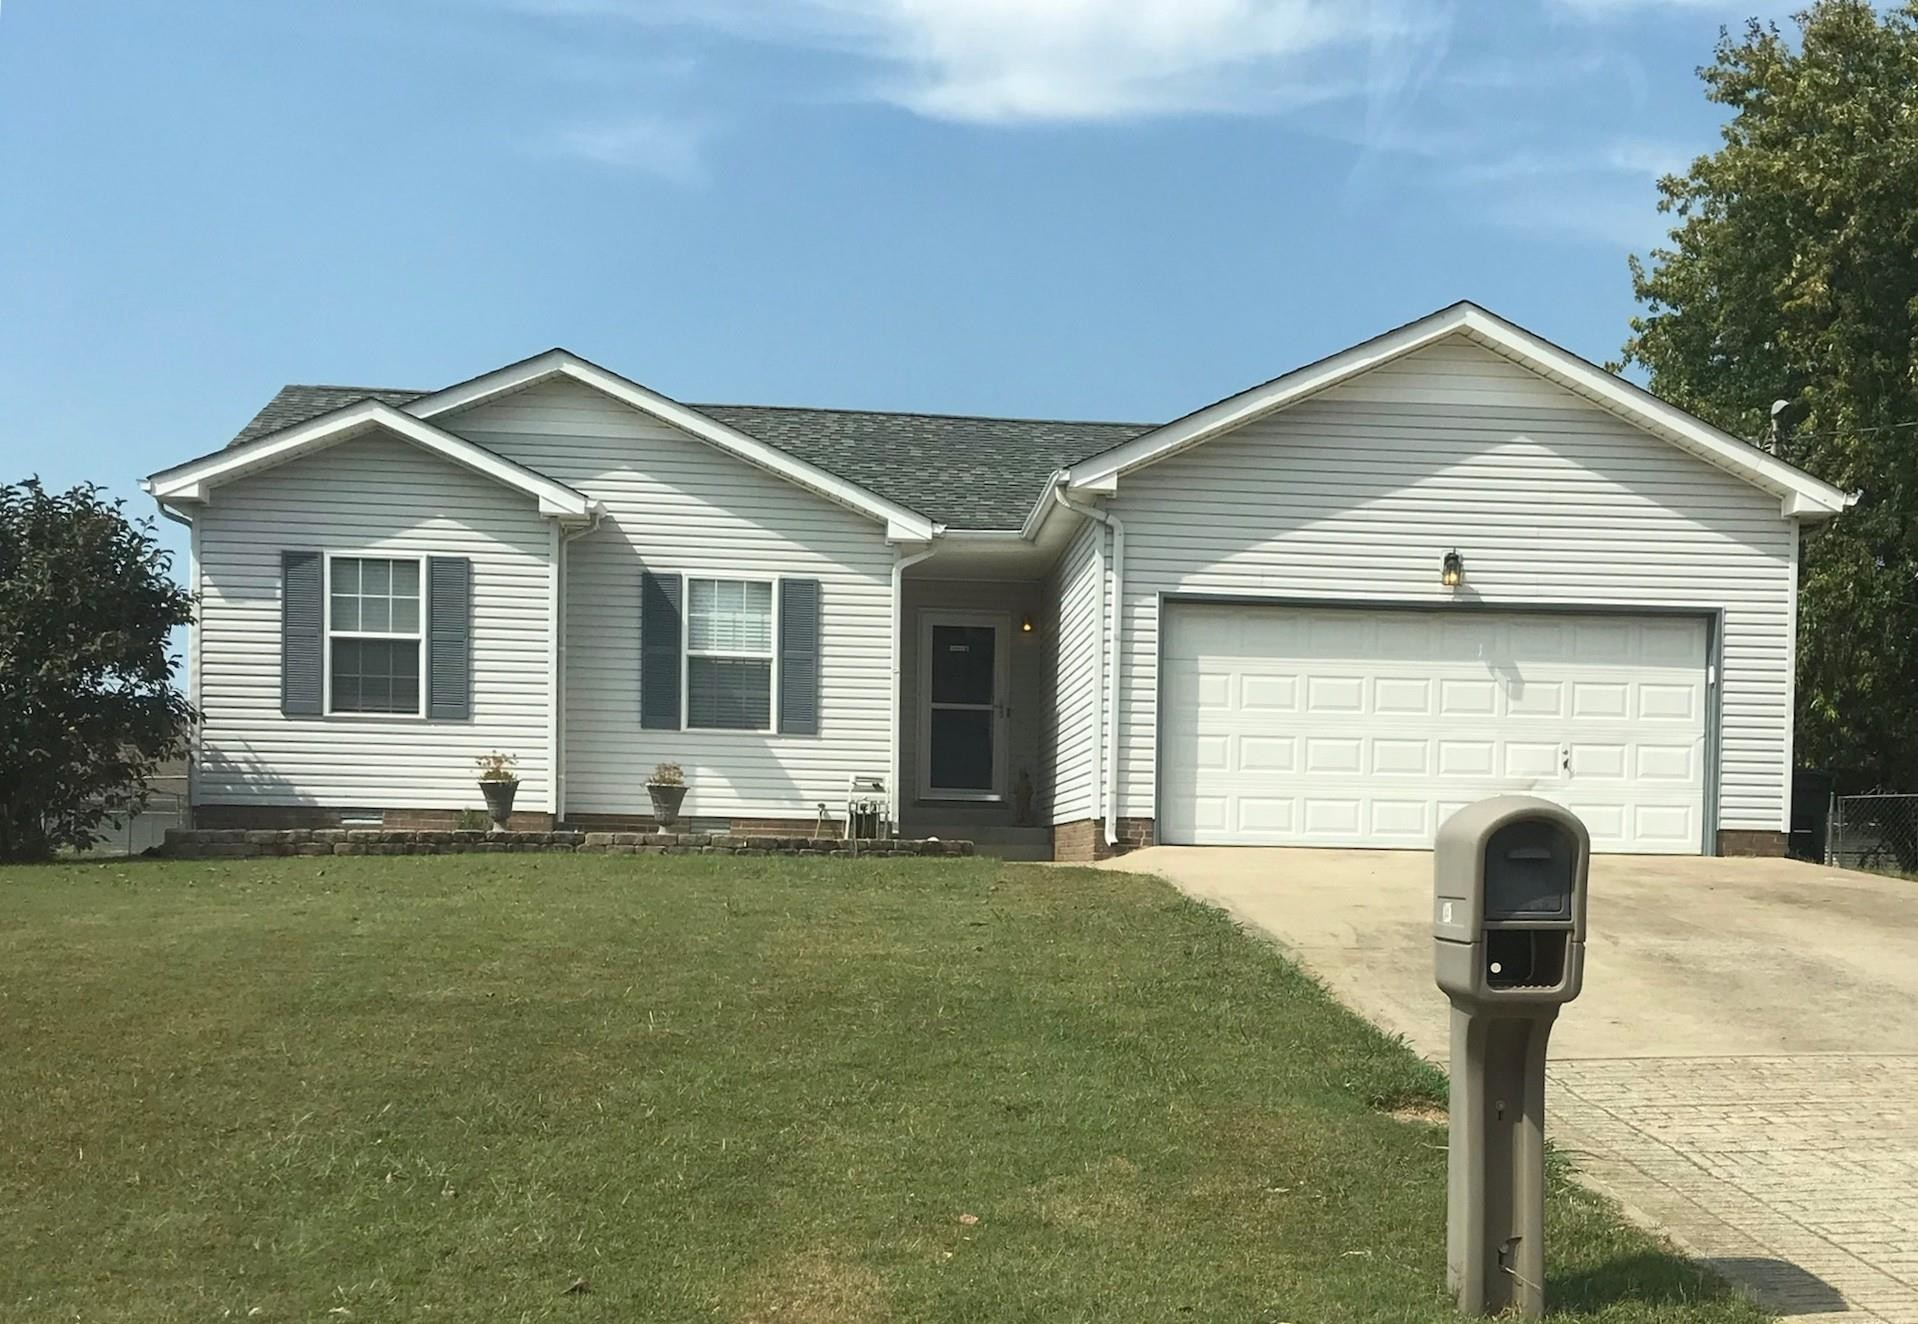 3442 Merganser Dr Property Photo - Clarksville, TN real estate listing